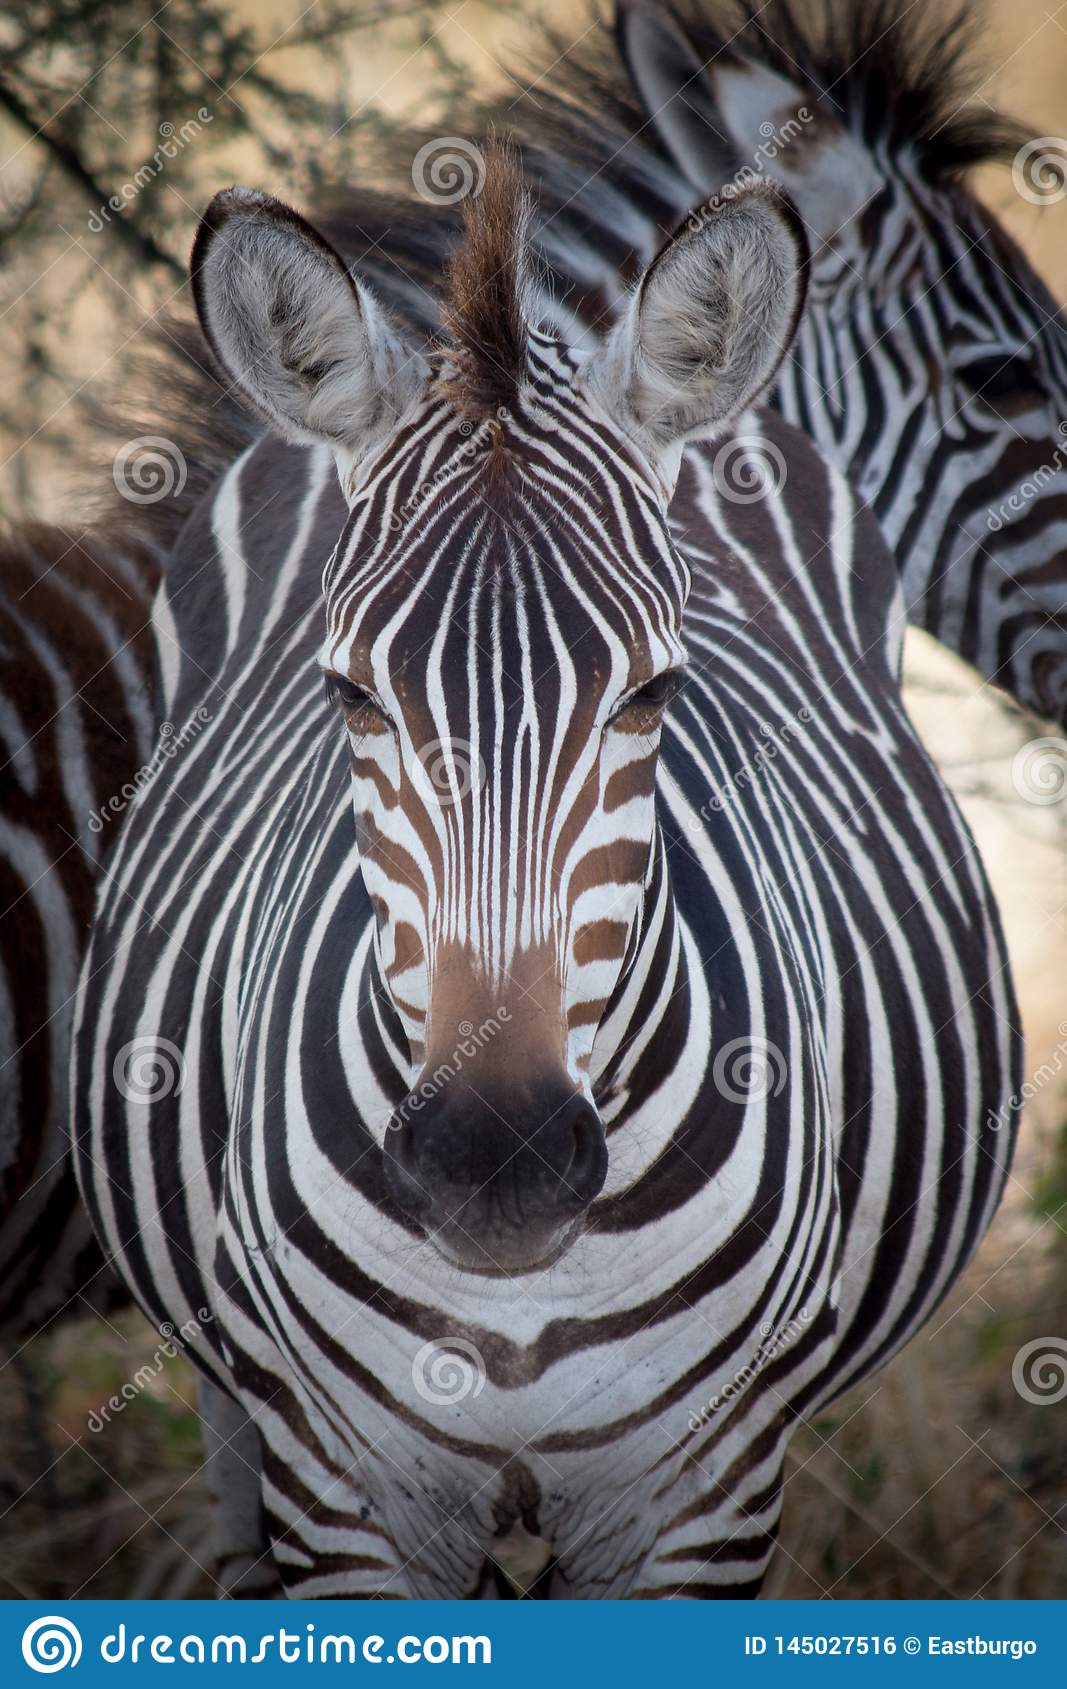 A zebra looks directly into the camera lens in Tanzania